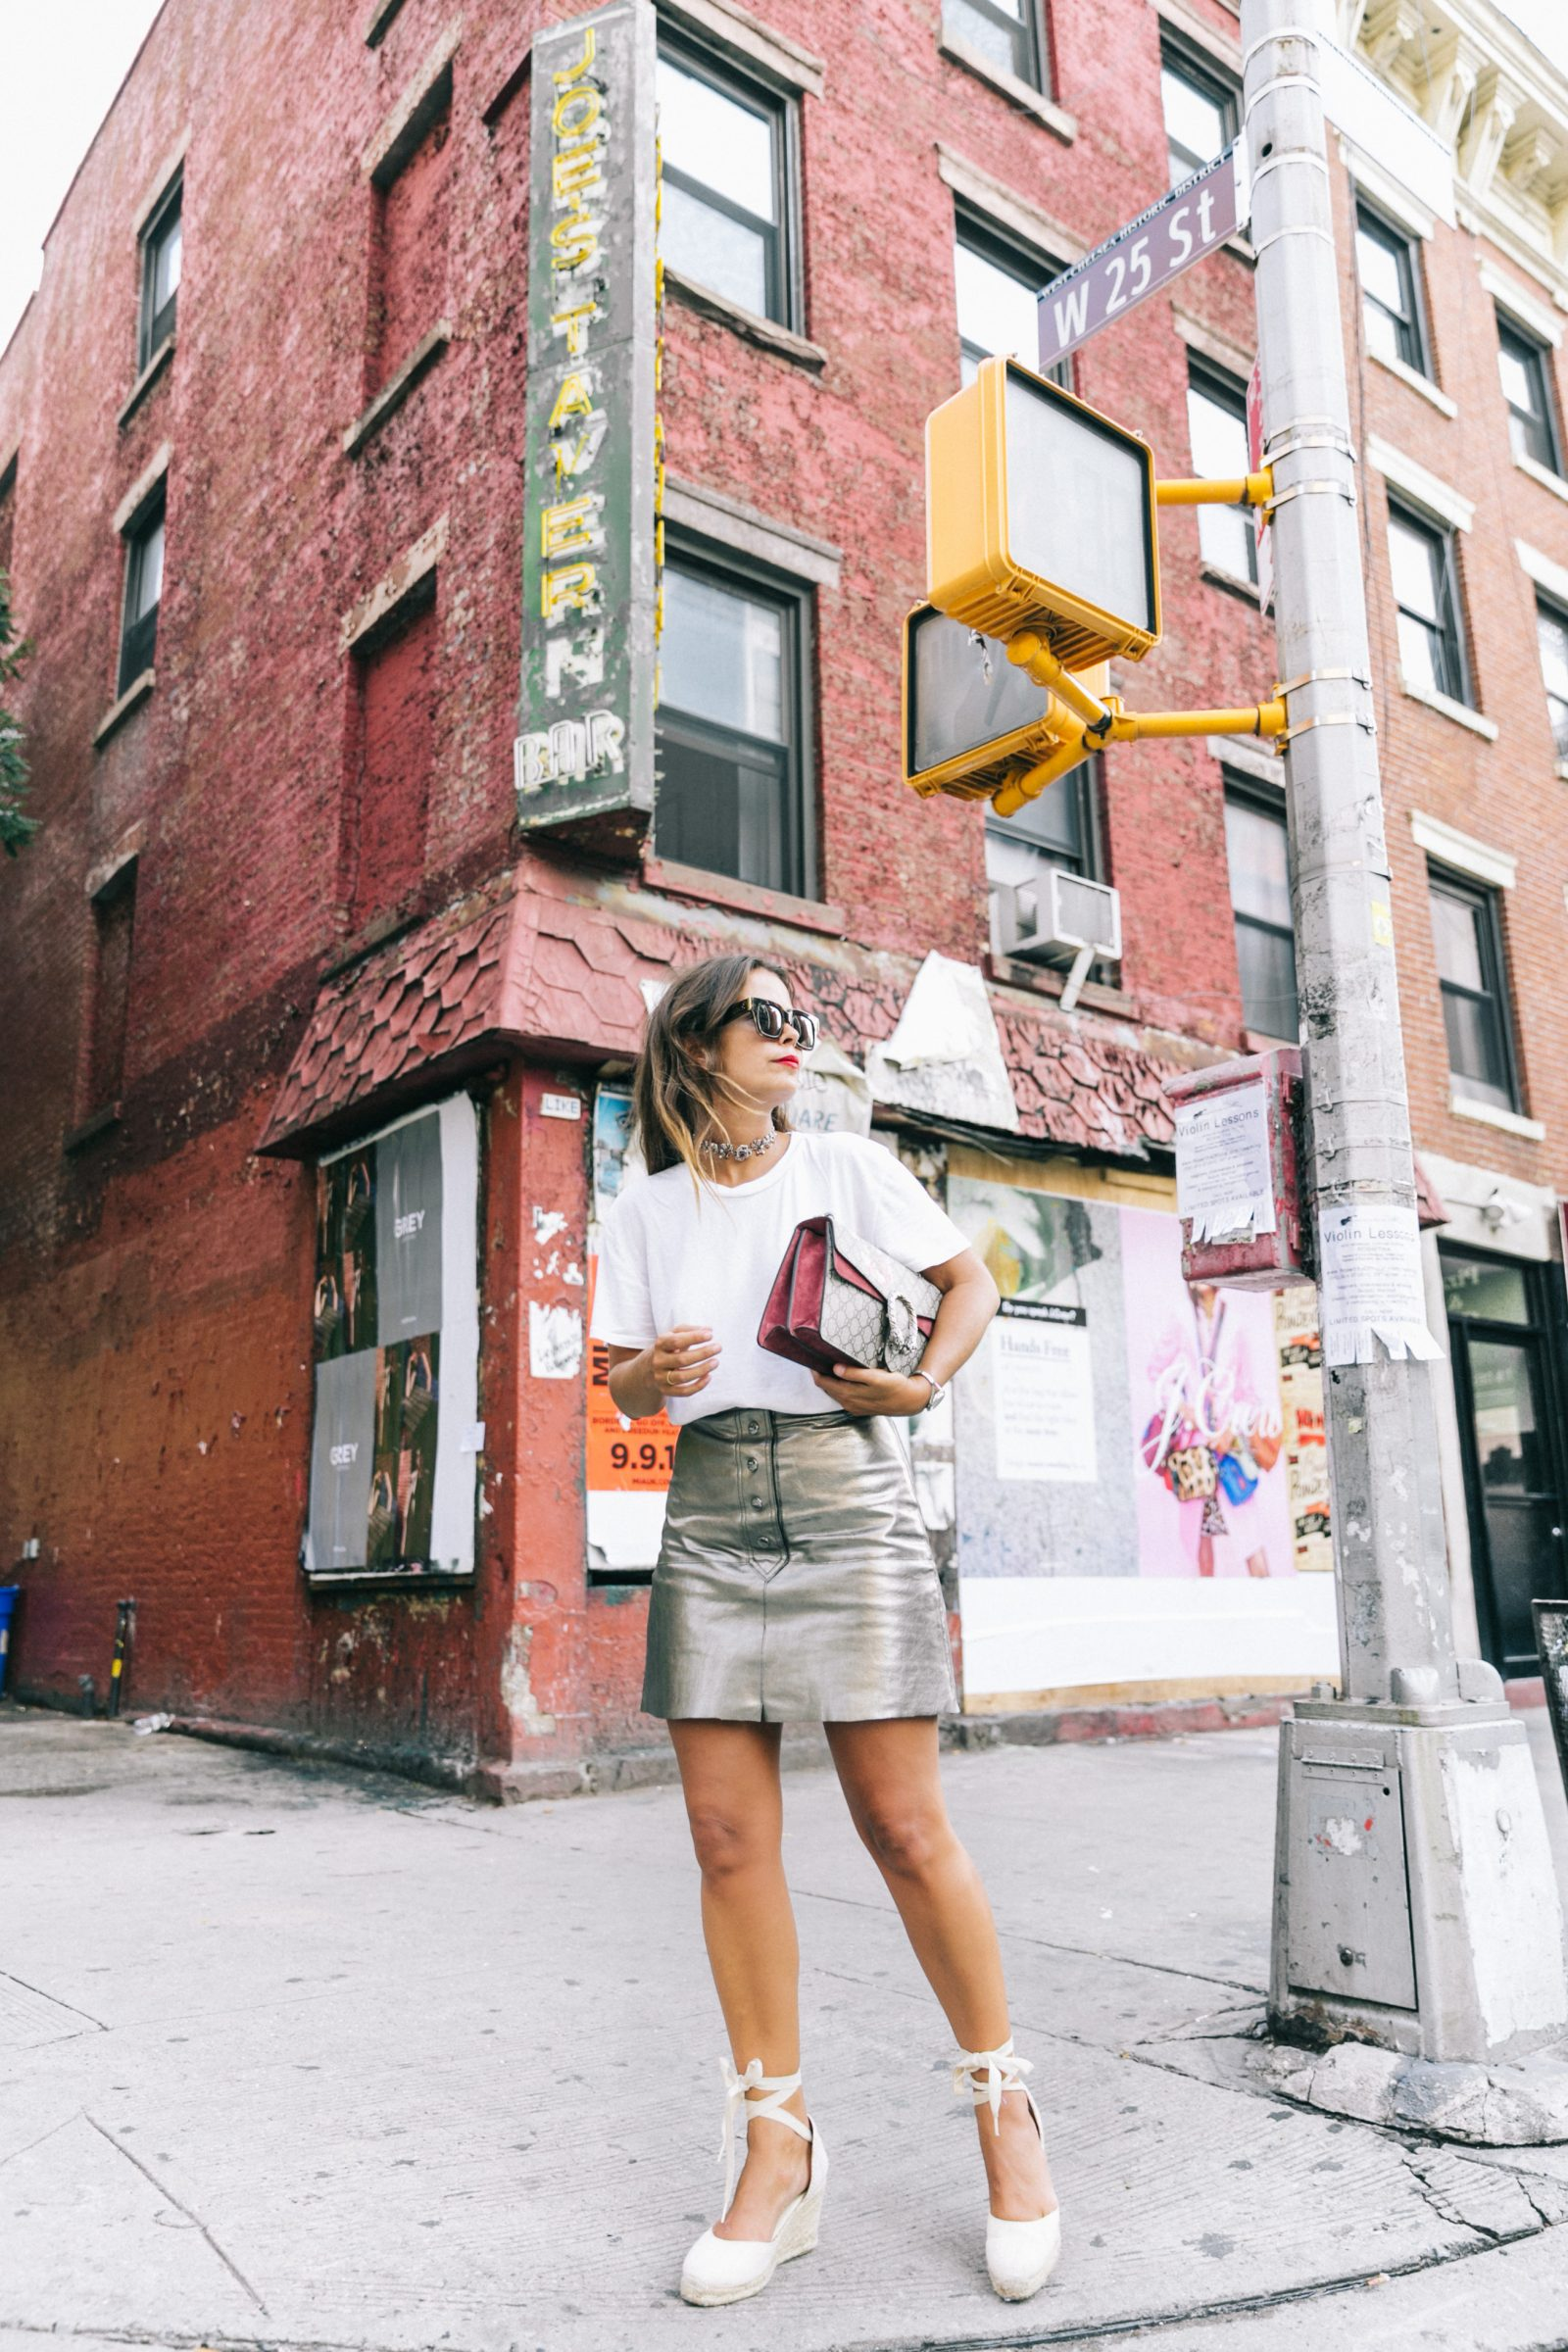 nyfw-new_york_fashion_week_ss17-street_style-outfit-collage_vintage-metallic_leather_skirt-gucci_bag-soludos_espadriles-26